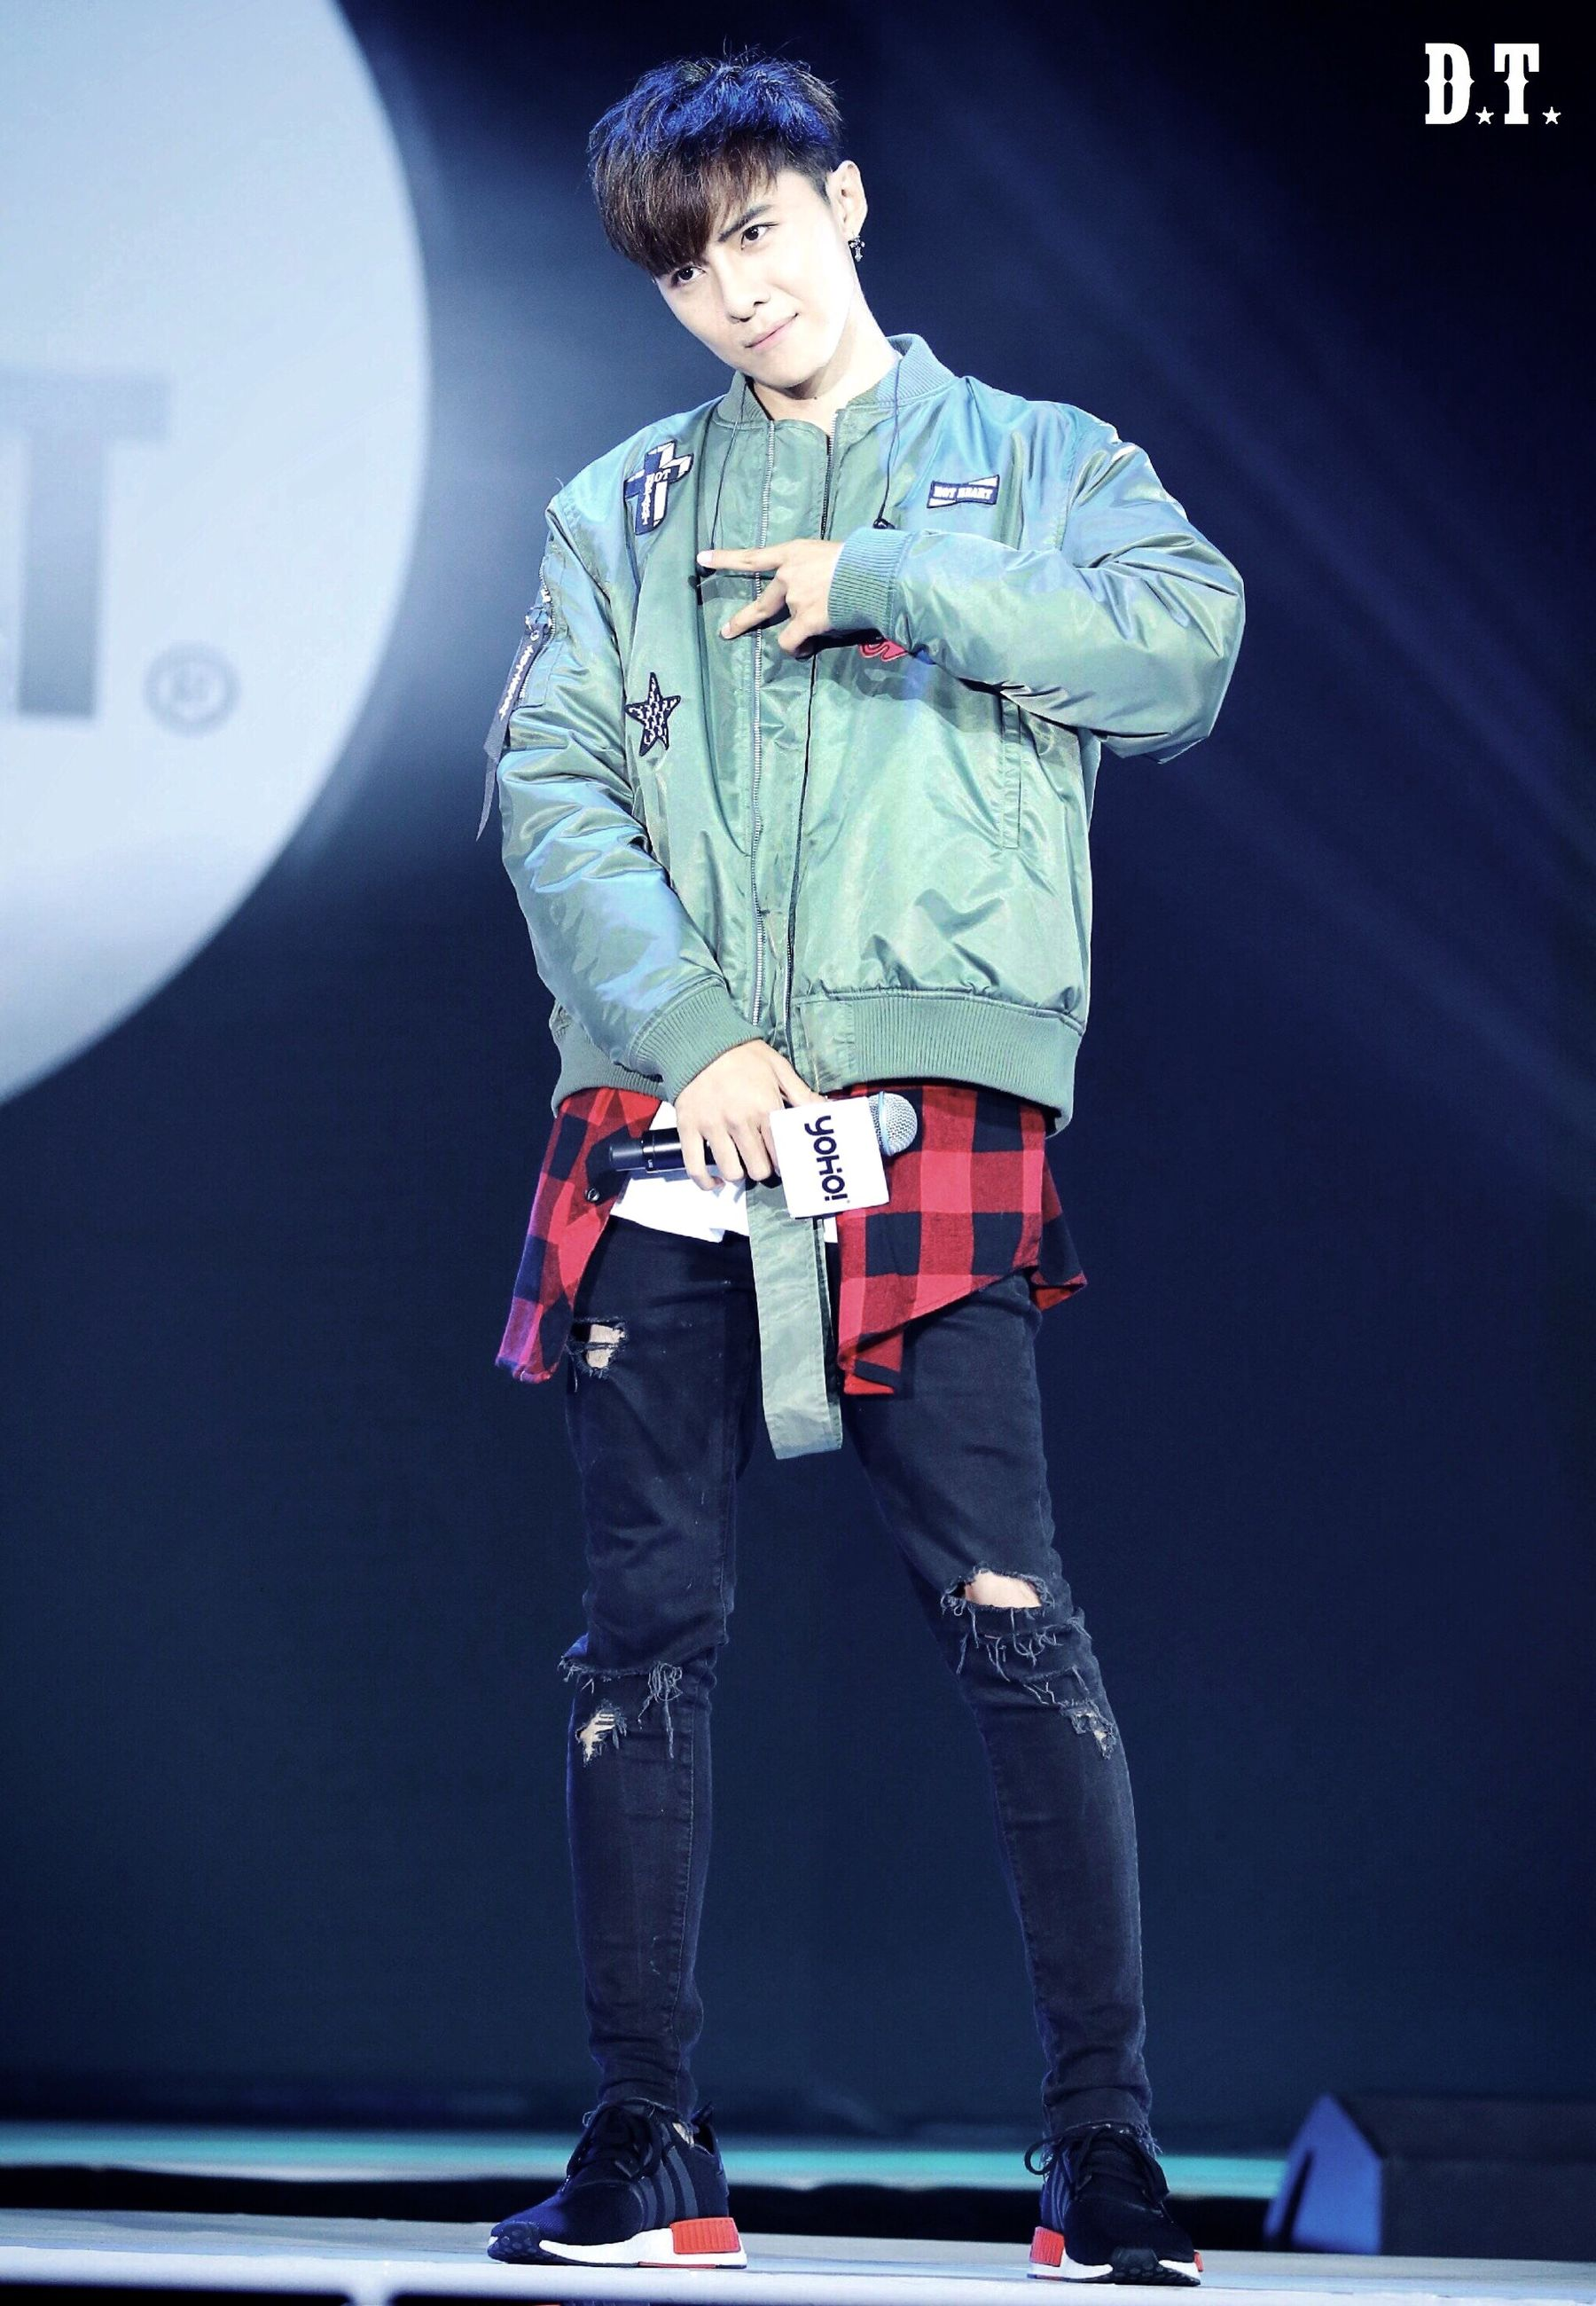 full length, standing, casual clothing, person, front view, young adult, well-dressed, youth culture